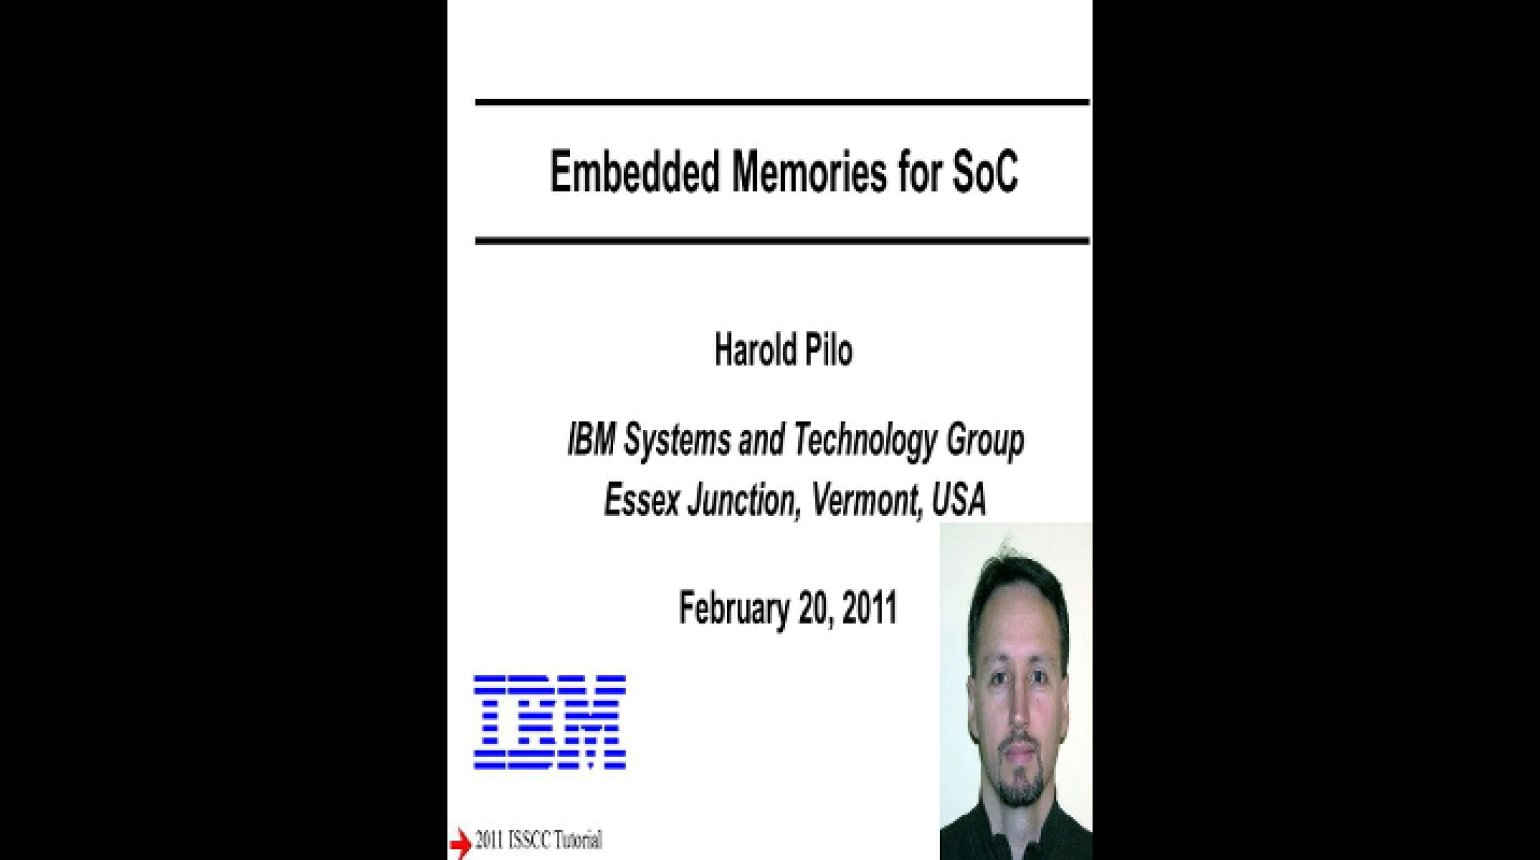 Embedded Memories for SoC Video